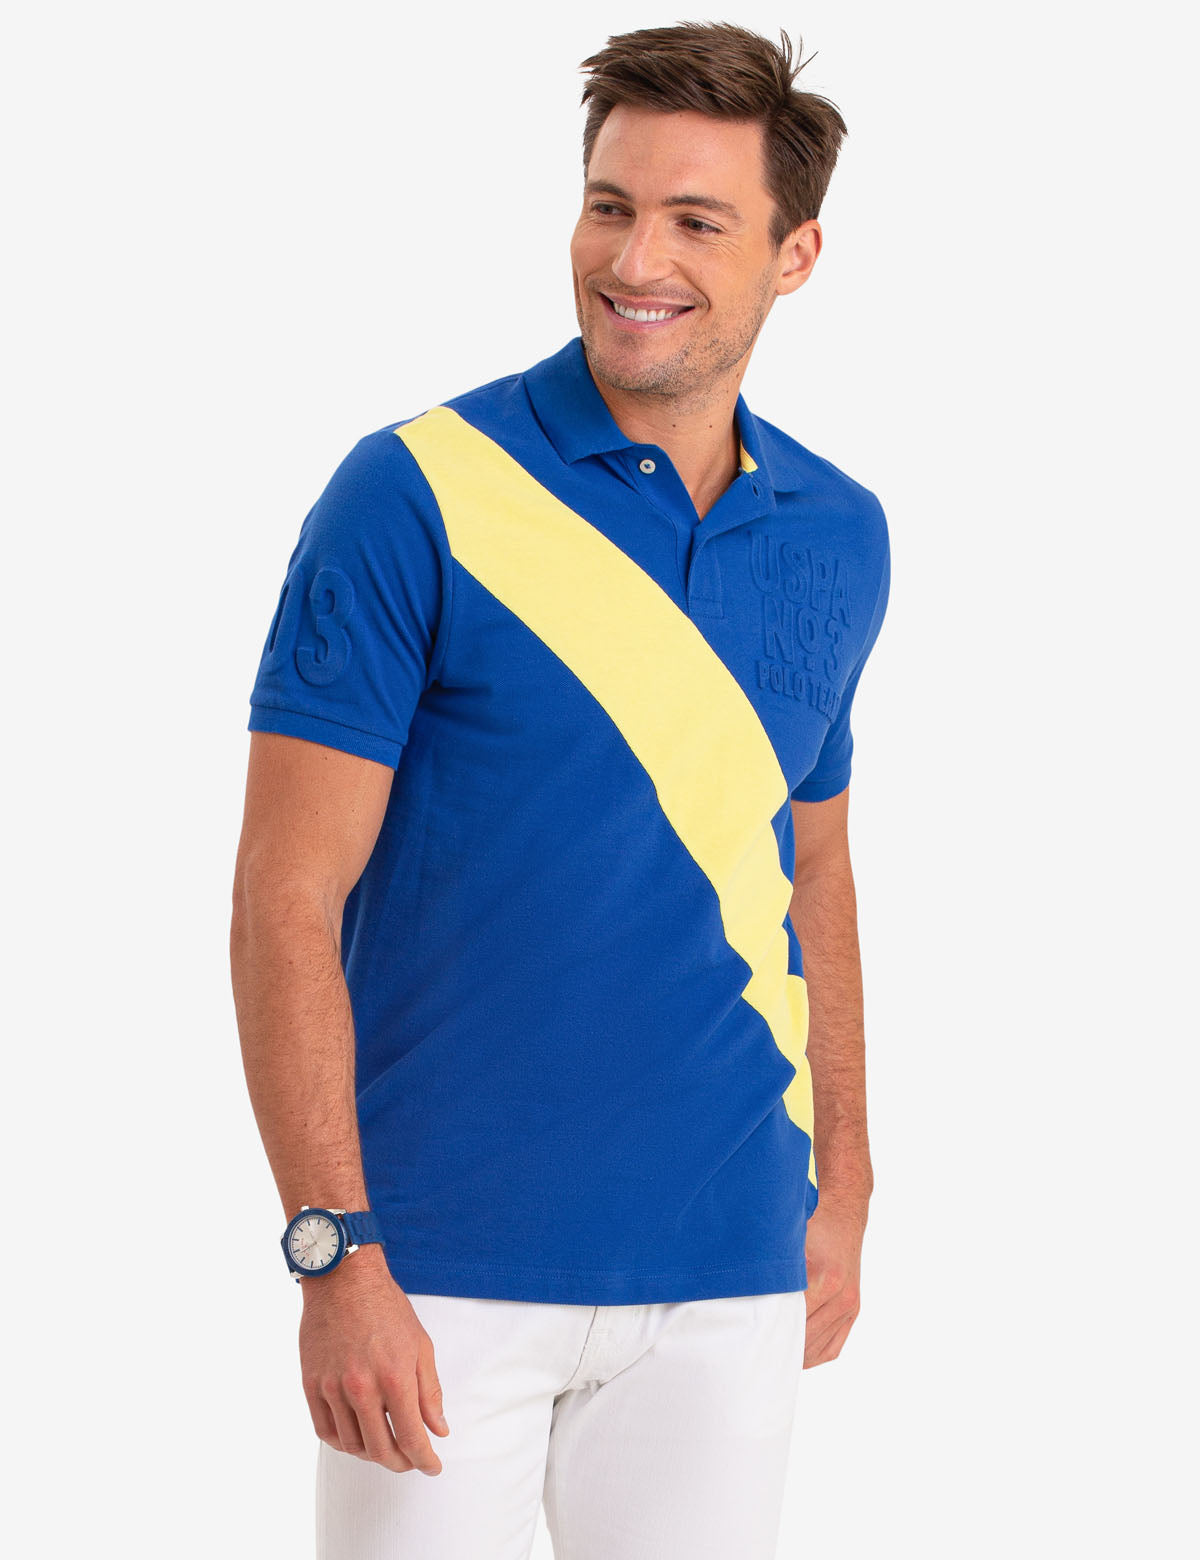 EMBOSSED LOGO DIAGONAL STRIPE POLO SHIRT - U.S. Polo Assn.